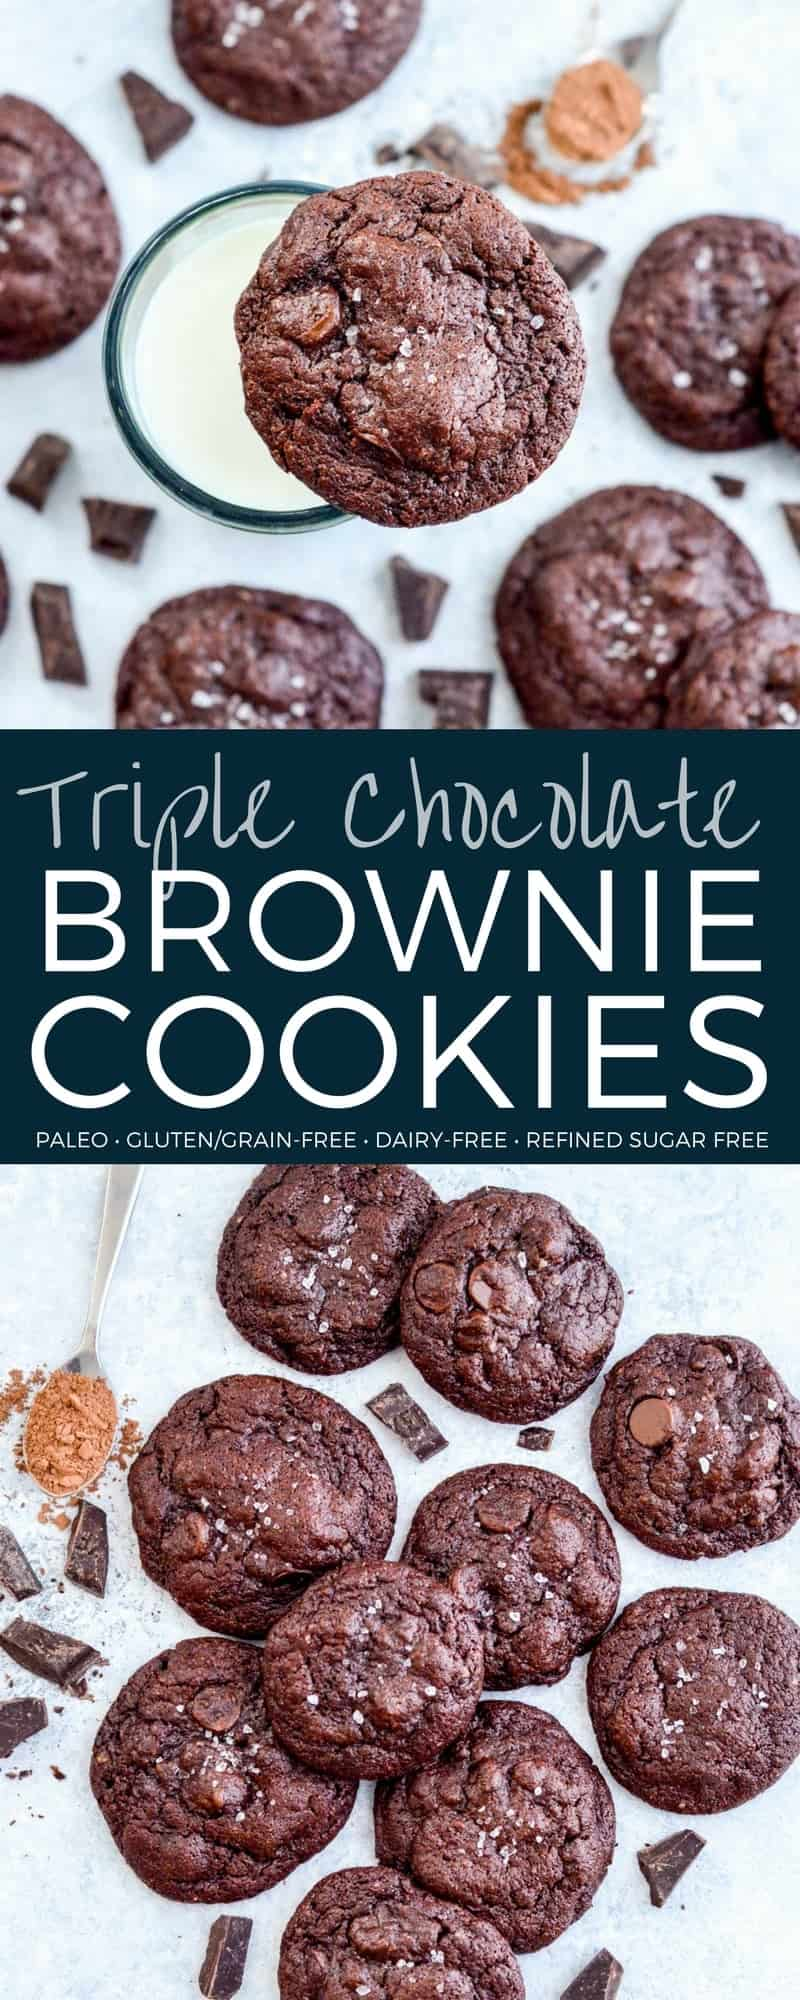 These Paleo Chocolate Cookies are the most fudgy, chocolatey cookies you will ever eat, and you'll never believe they're paleo, grain-free, gluten-free, dairy-free and refined-sugar free! #chocolate #cookies #paleo #glutenfree #grainfree #dairyfree